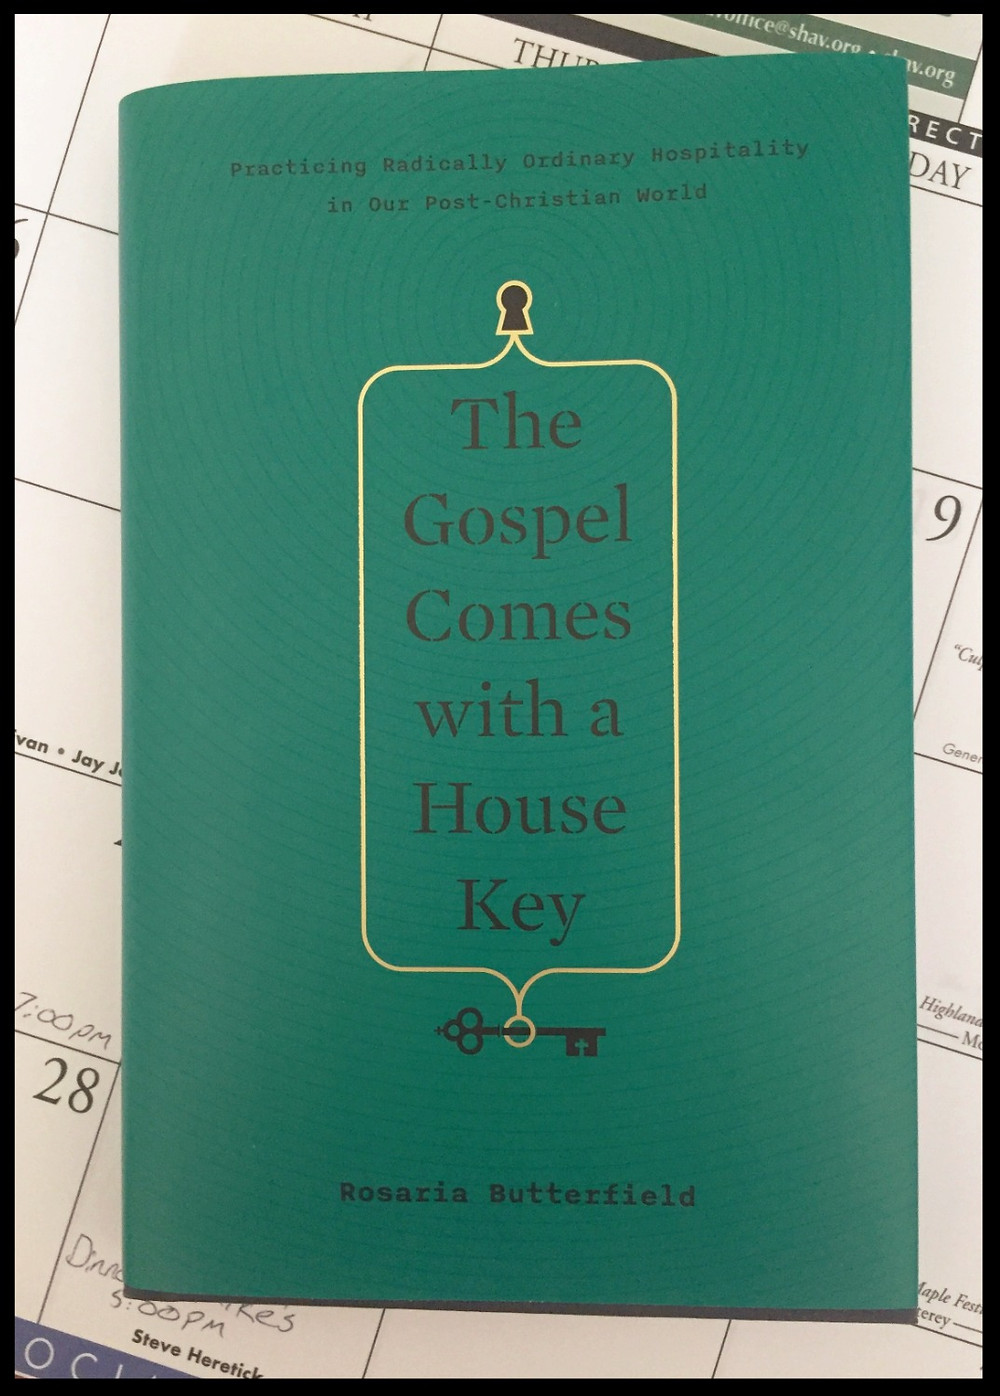 The Gospel Comes with a House Key book cover.